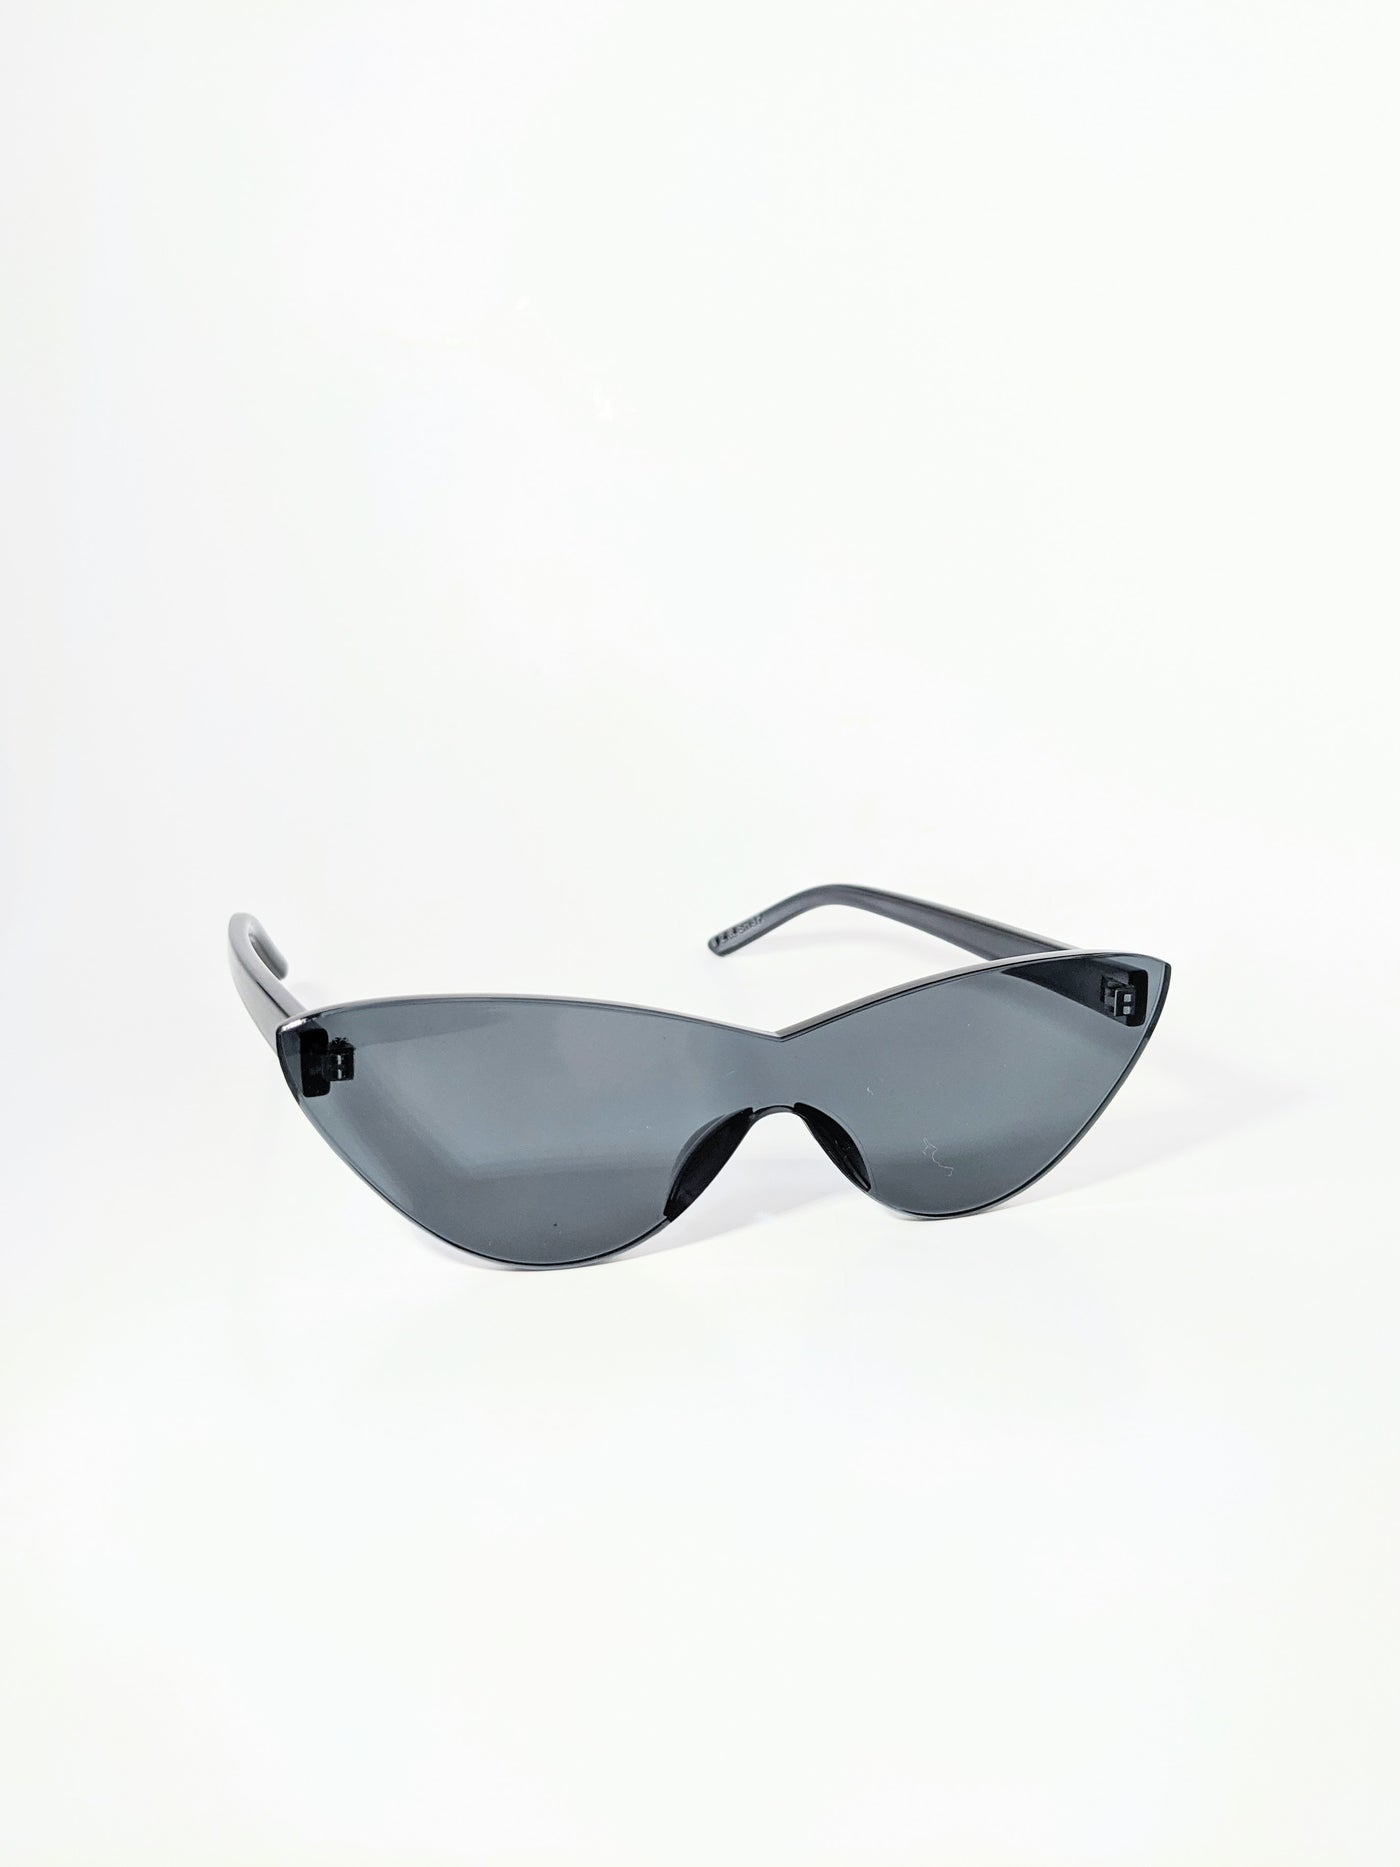 Cat eye sunglasses by Chunks available at Local Assembly